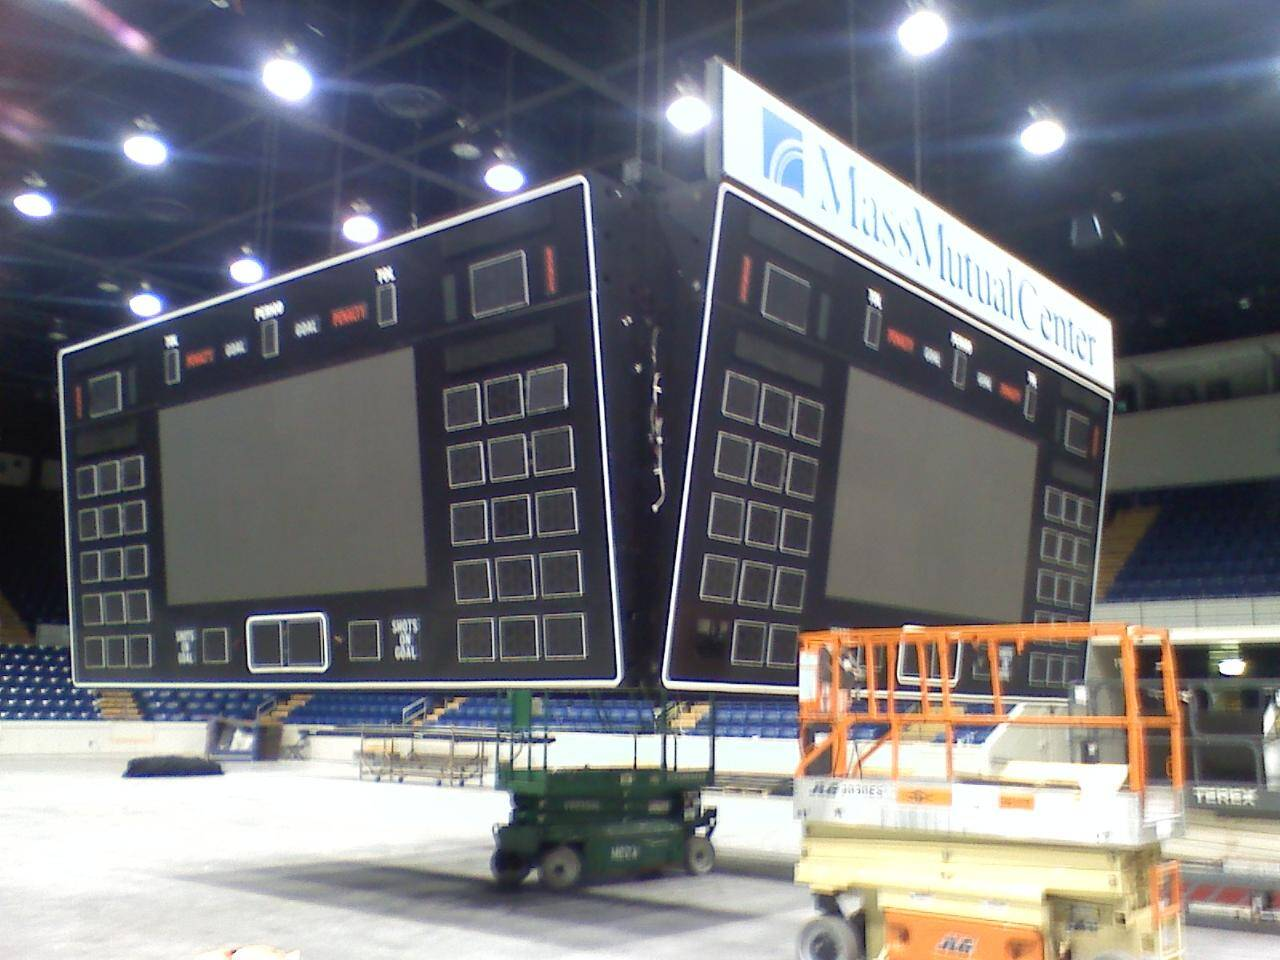 Using the scoreboard to load test 4 overhead cranes at Mass Mutual Center